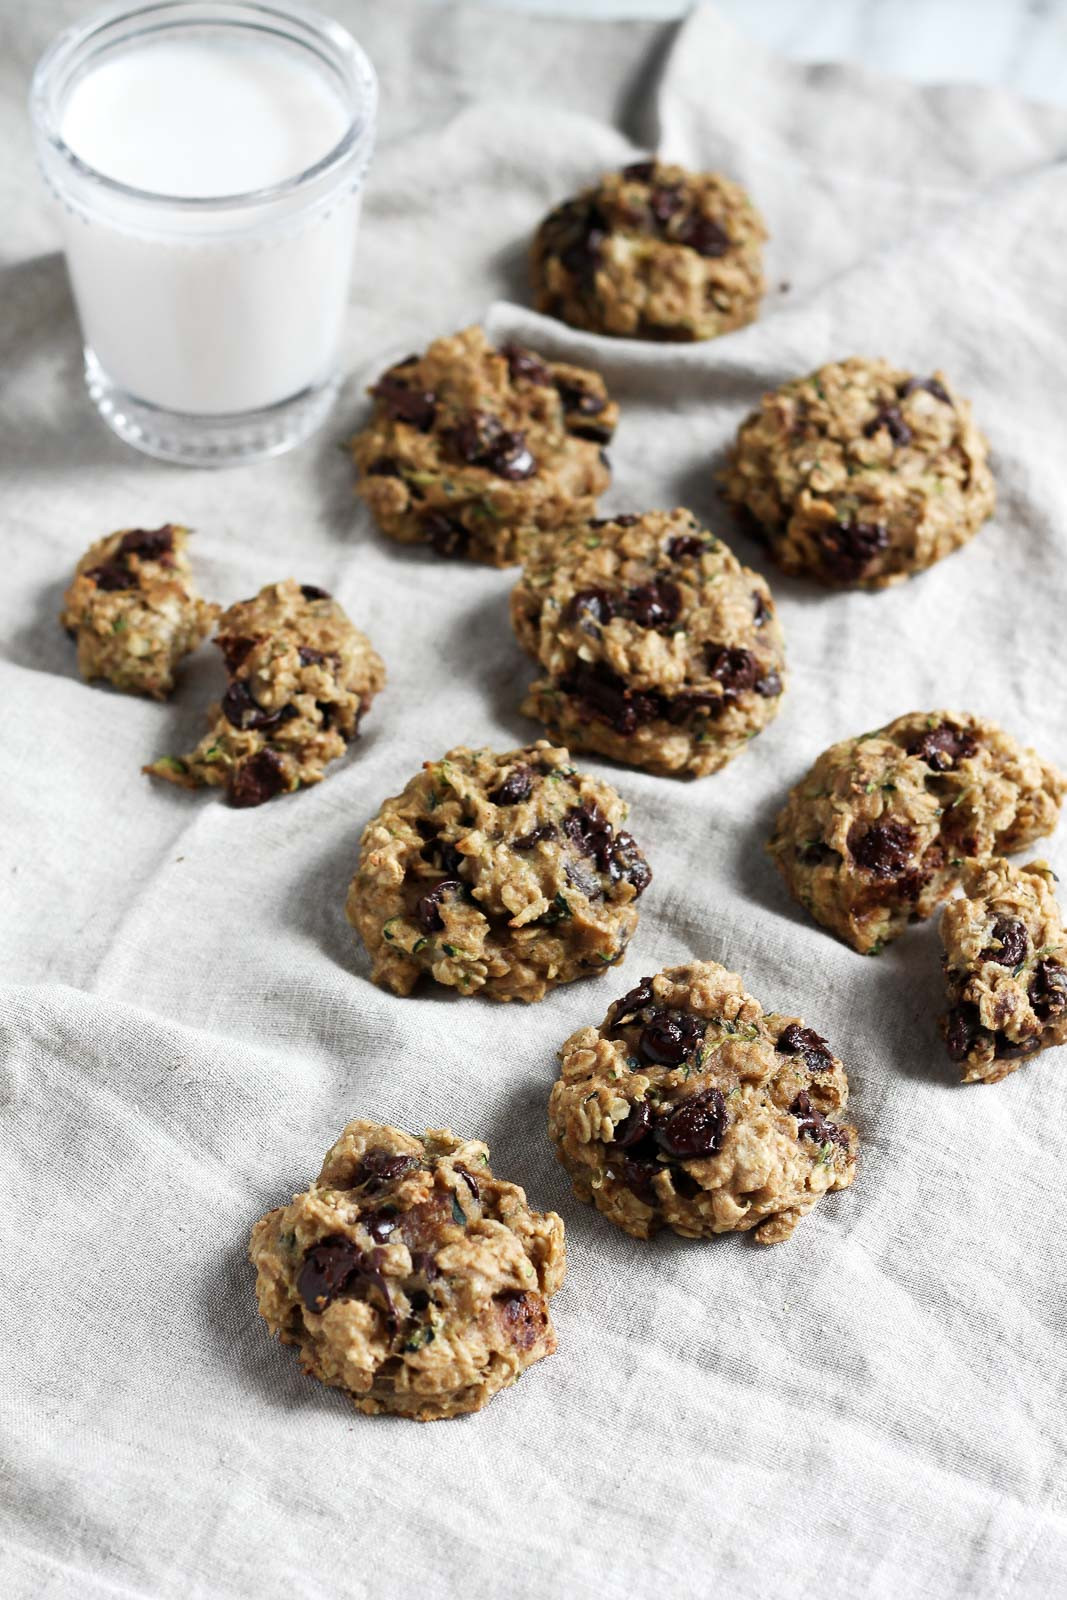 Chocolate Oatmeal Cookies Healthy  Healthy Chocolate Chip Zucchini Oatmeal Cookies